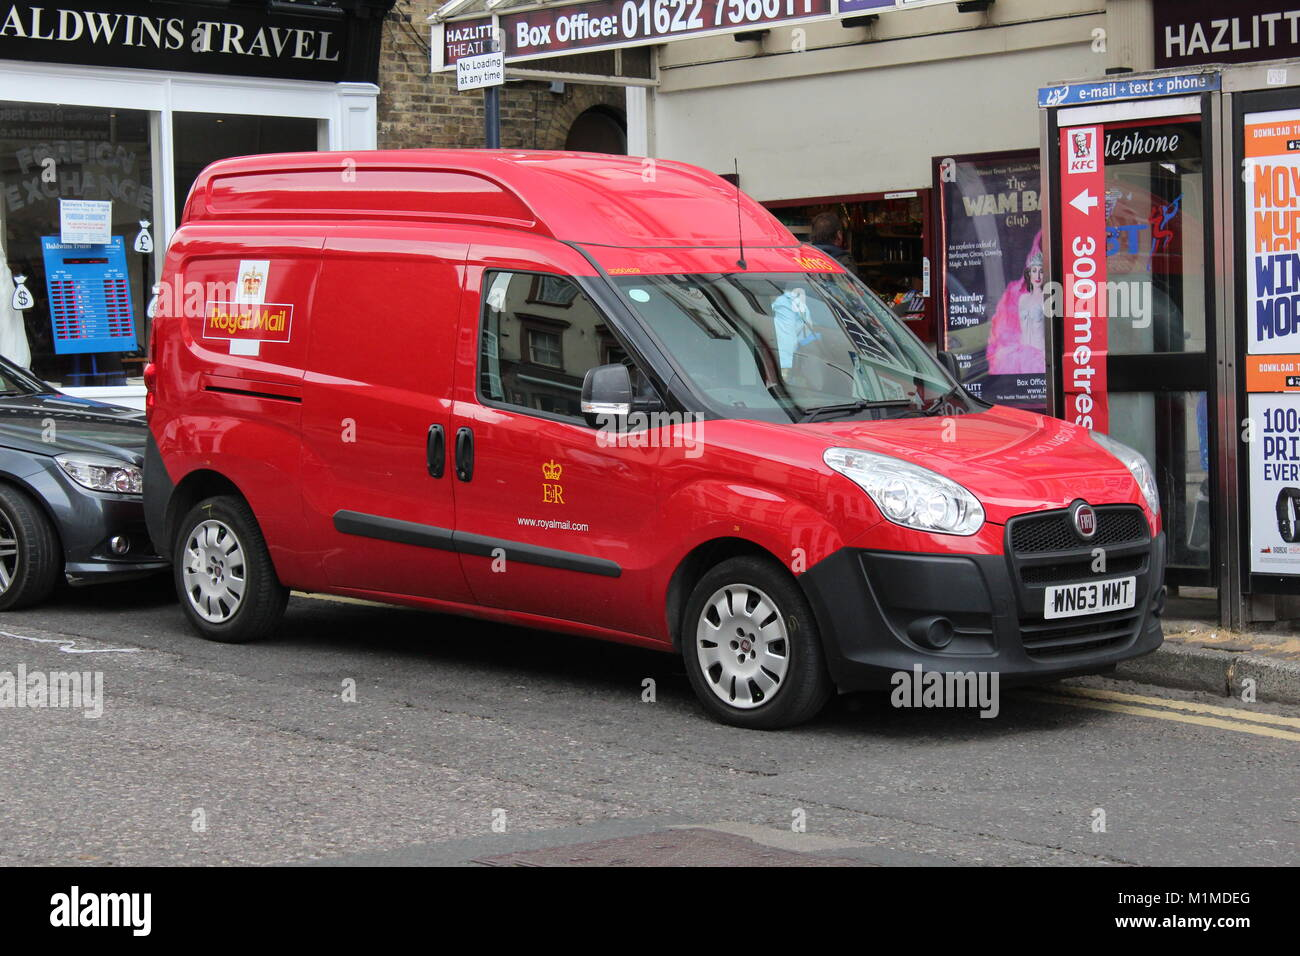 A RED FIAT ROYAL MAIL DELIVERY VAN - Stock Image